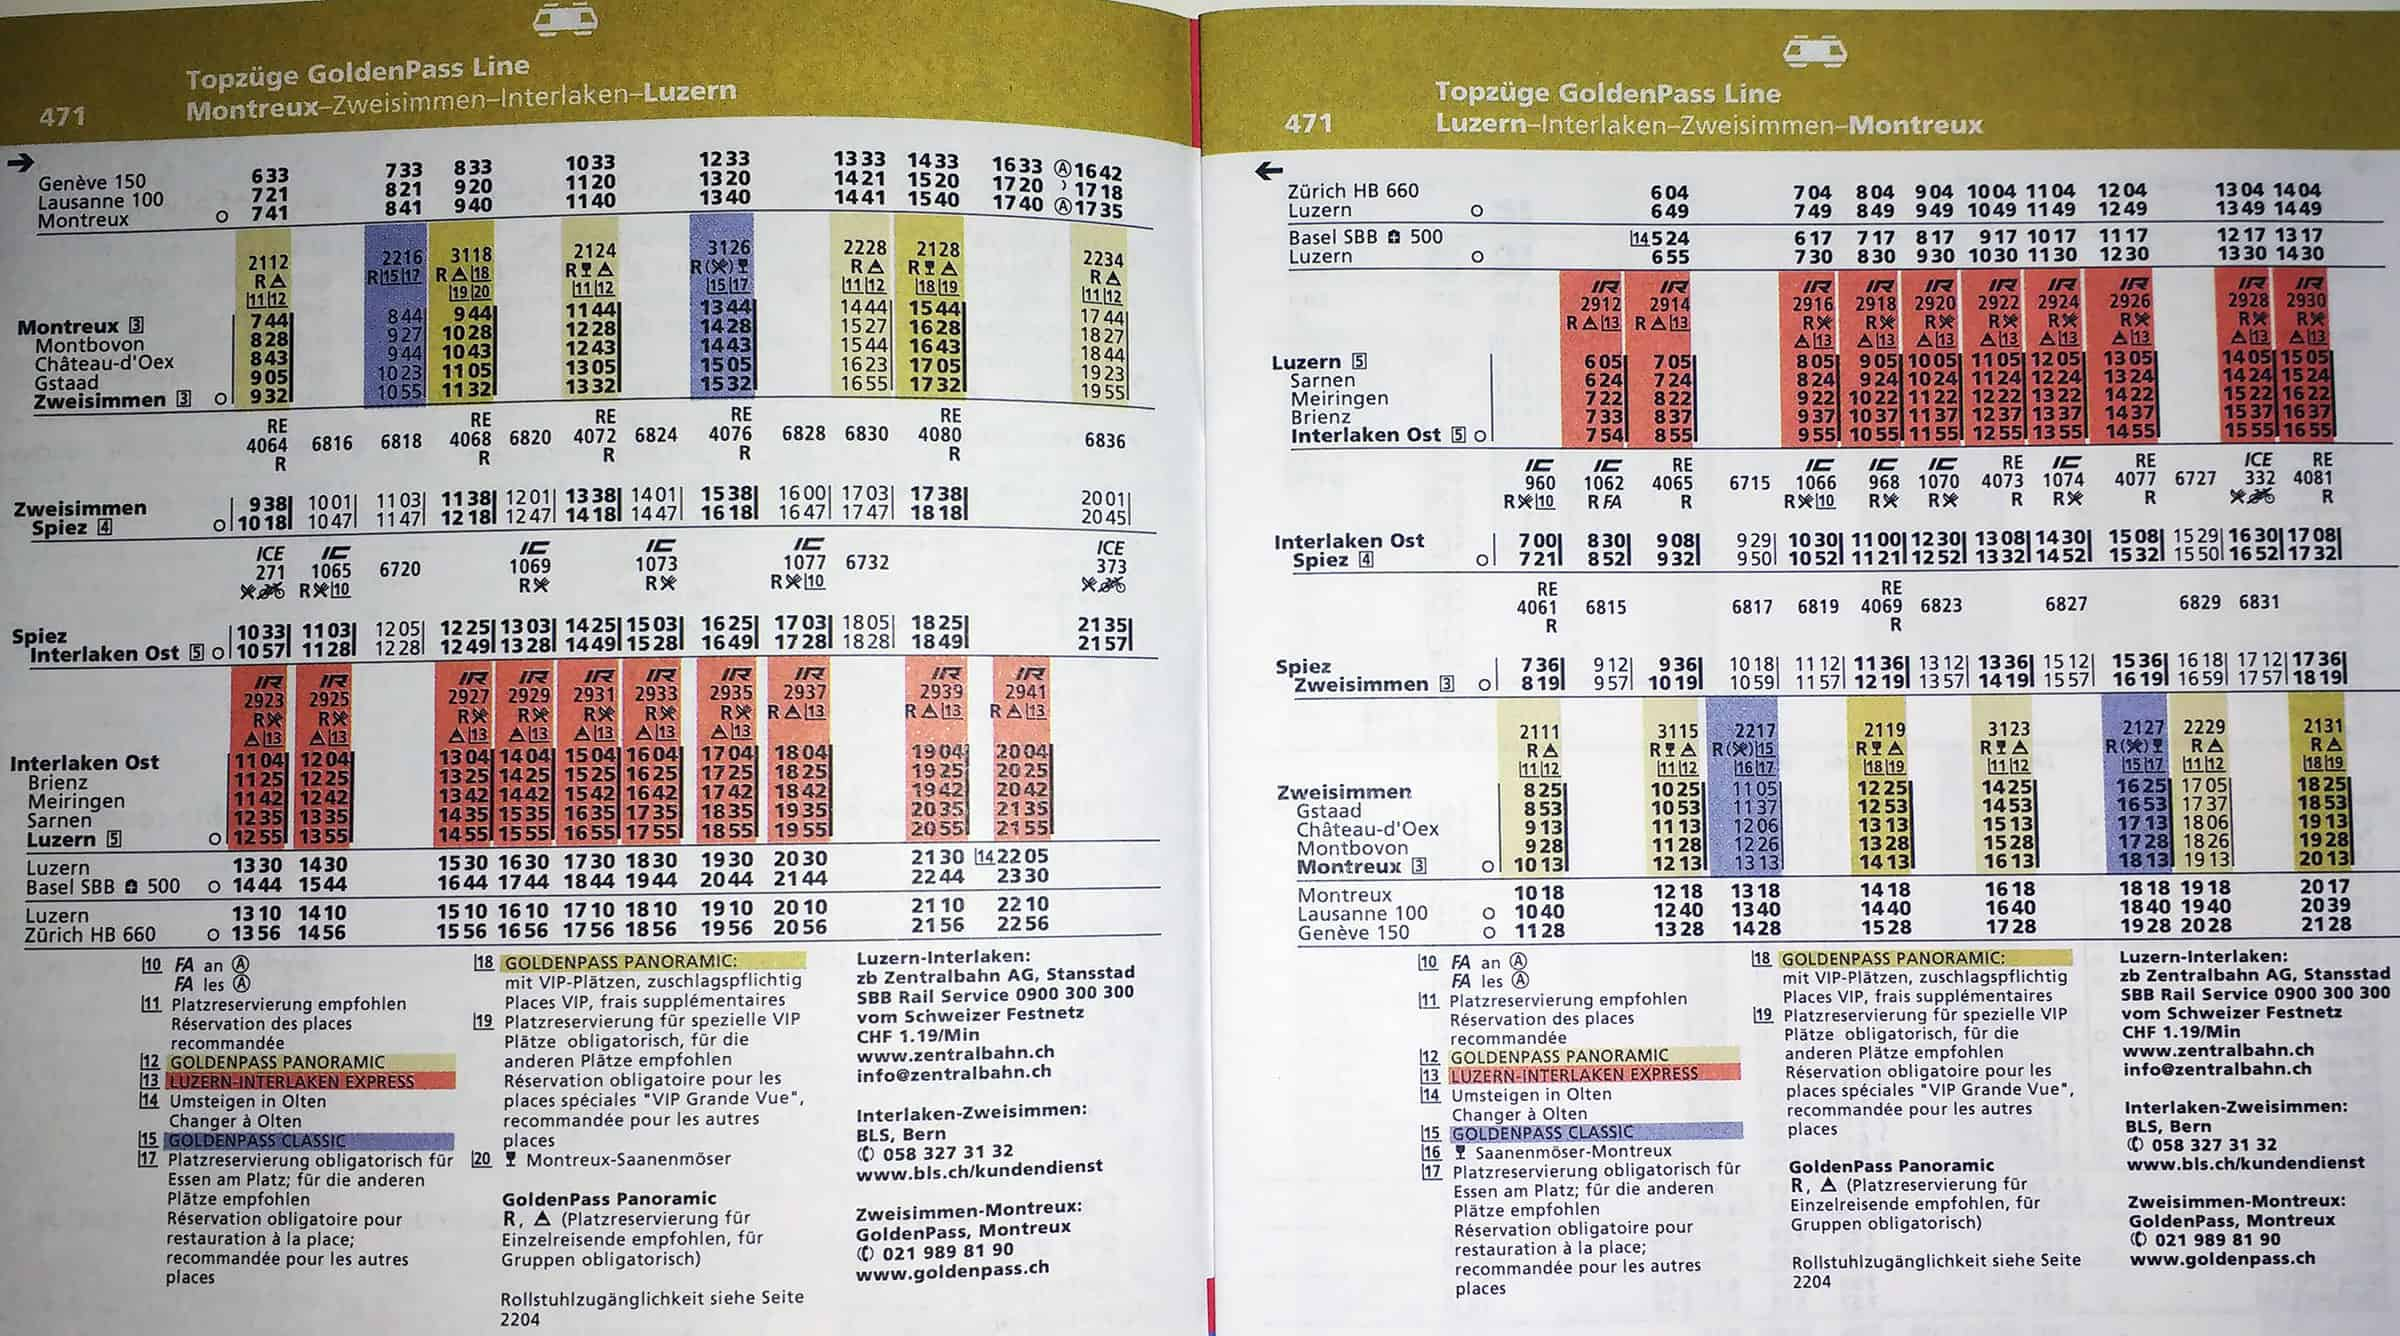 Timetable GoldenPass Line